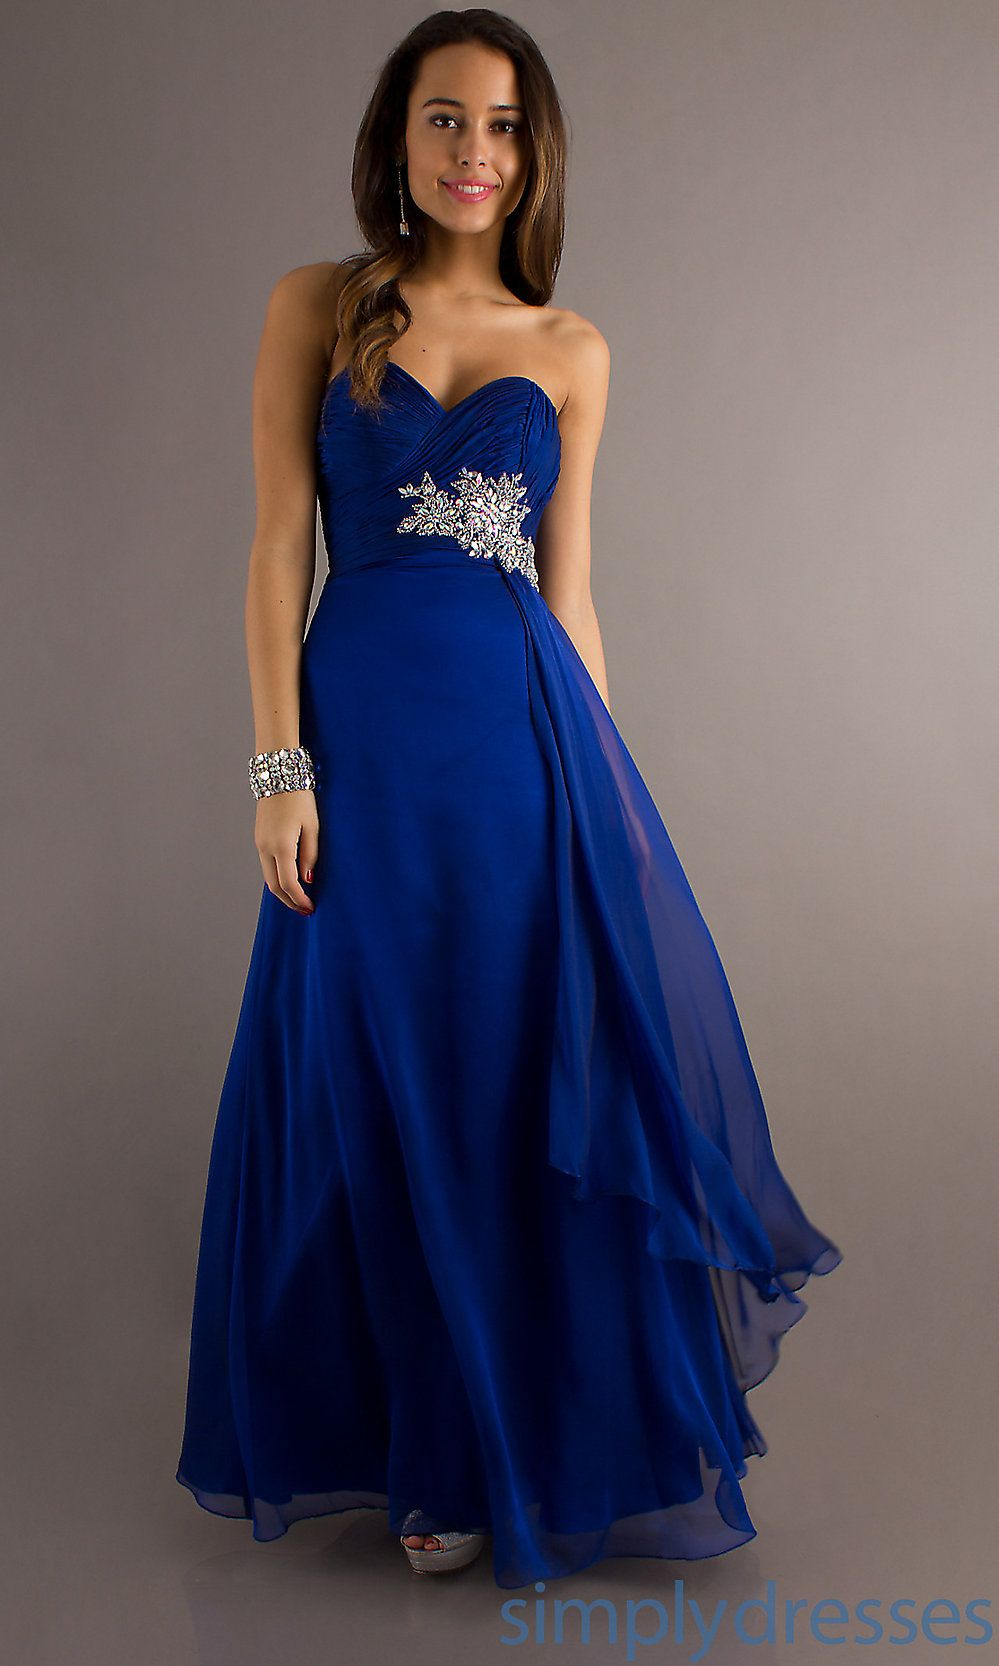 Dresses formal prom dresses evening wear temptation for Blue silver wedding dress